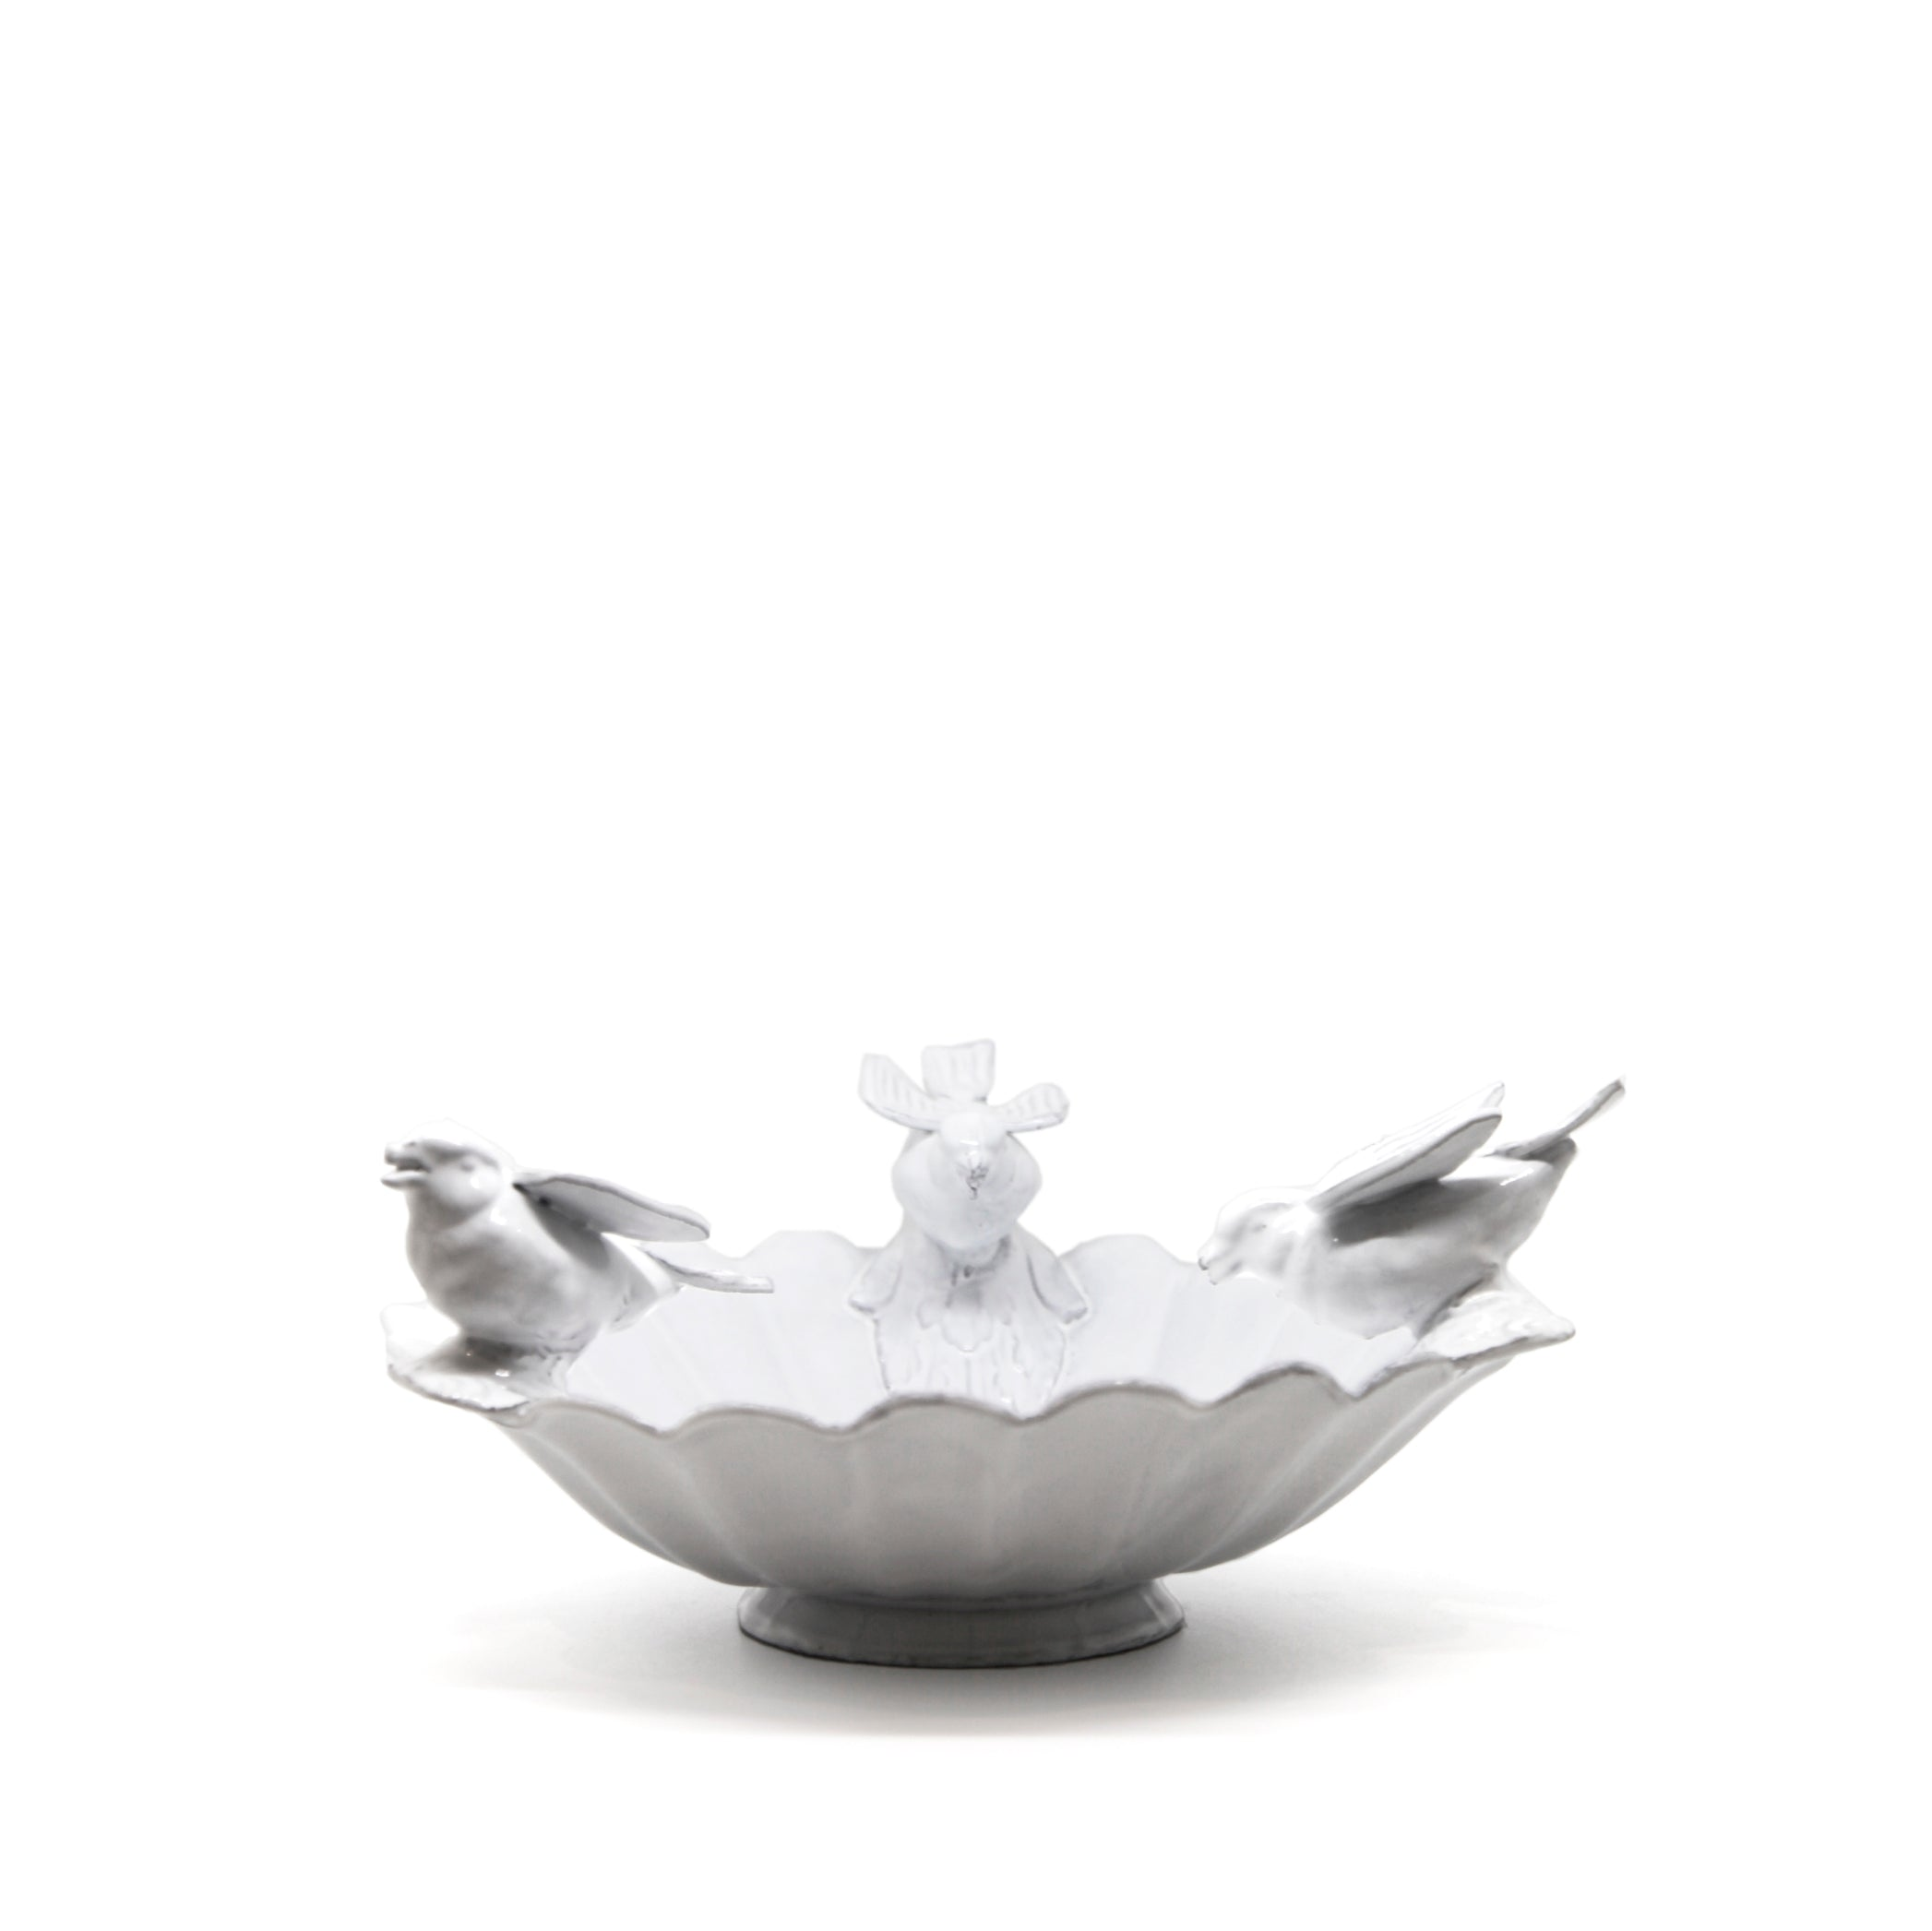 Marguerite Fruit Bowl with Three Birds by Astier de Villatte